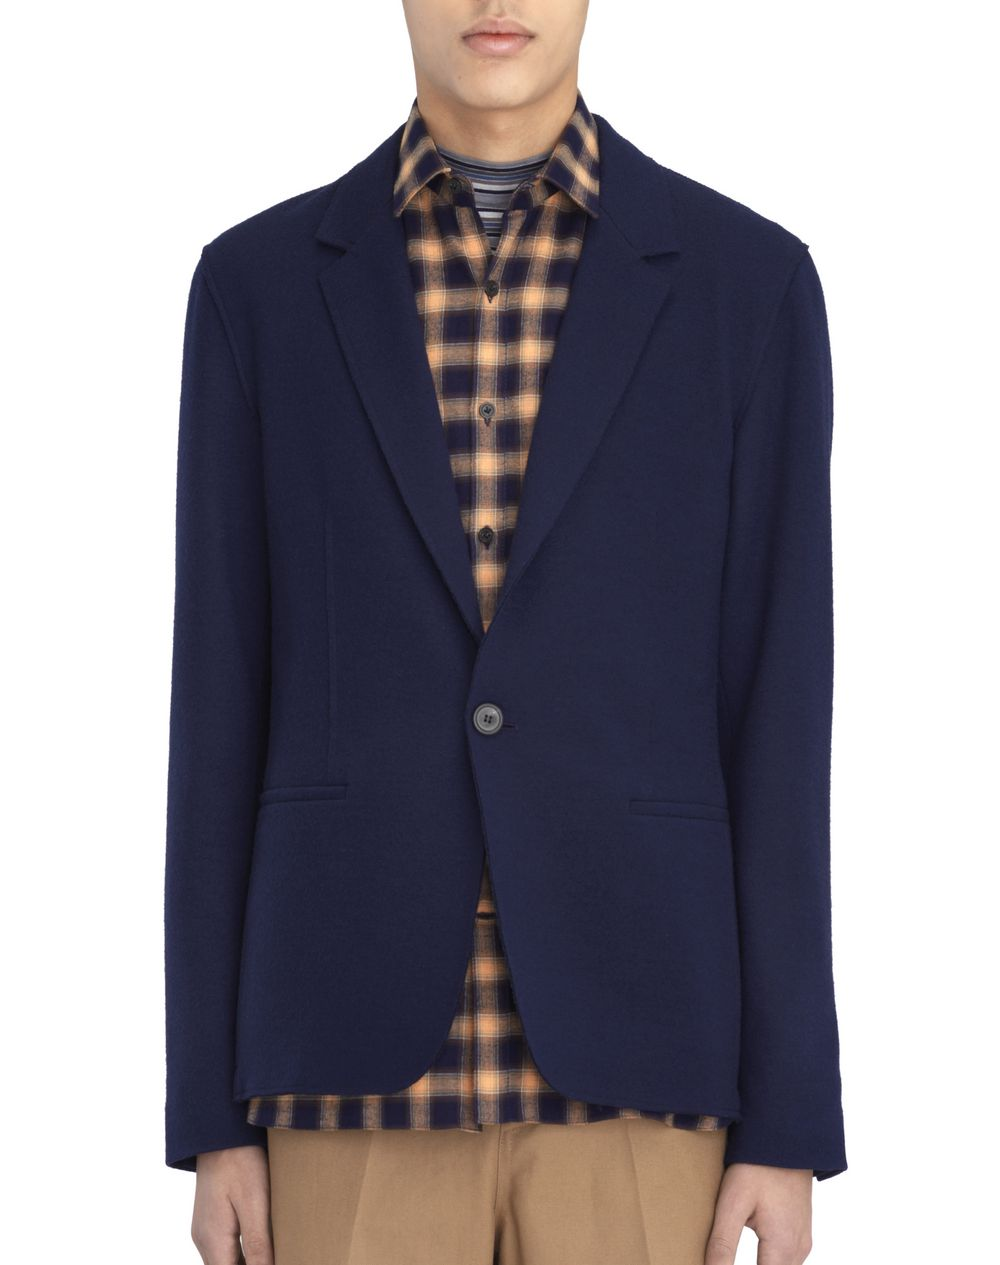 BLUE DECONSTRUCTED JACKET - Lanvin